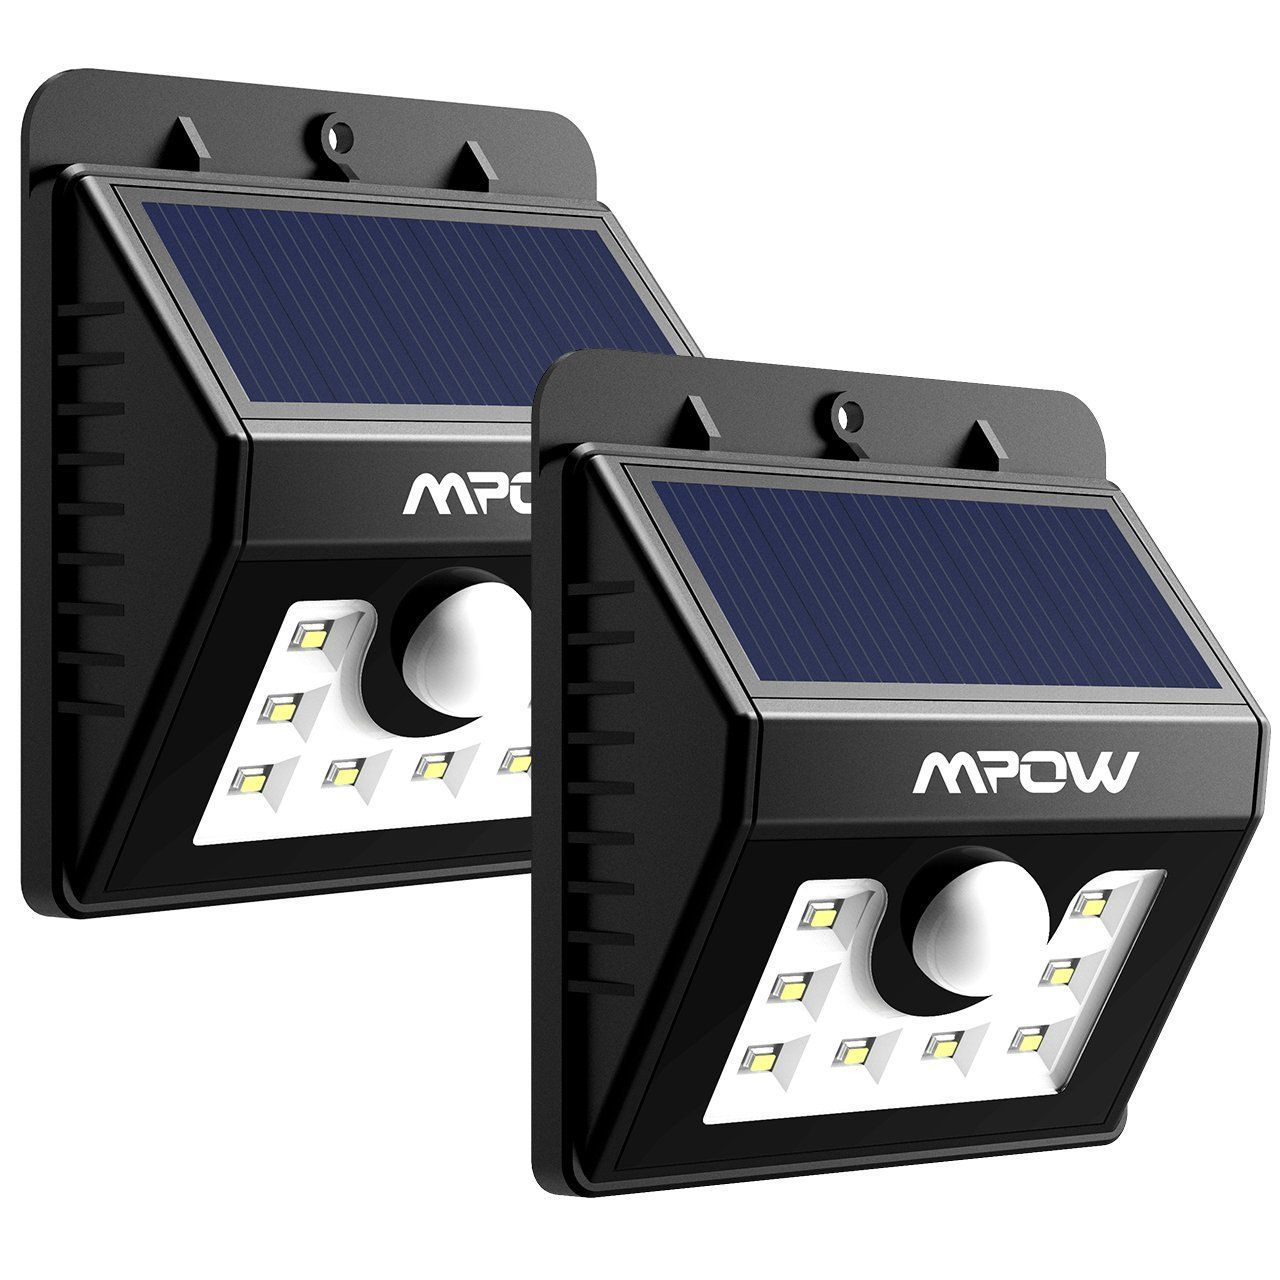 Mpow Solar Lights, 2-Pack LED Motion Sensor Wall Light Bright Weatherproof Wireless Security Outdoor Light with Motion Activated ON/OFF for Step, Garden, Yard, Deck only $24.99 from https://www.amazon.com/gp/product/B015CCL1V2/ref=as_li_ss_tl?pf_rd_m=ATVPDKIKX0DER&pf_rd_s=merchandised-search-4&pf_rd_r=TCKXHZY6A7117CHKHEXV&pf_rd_t=101&pf_rd_p=e8b2dbe3-4894-5132-8283-8e49c29a5c83&pf_rd_i=495224&linkCode=ll1&tag=pinhome-20&linkId=3c5d0bb2bc4f28d0c8024c1a96546972